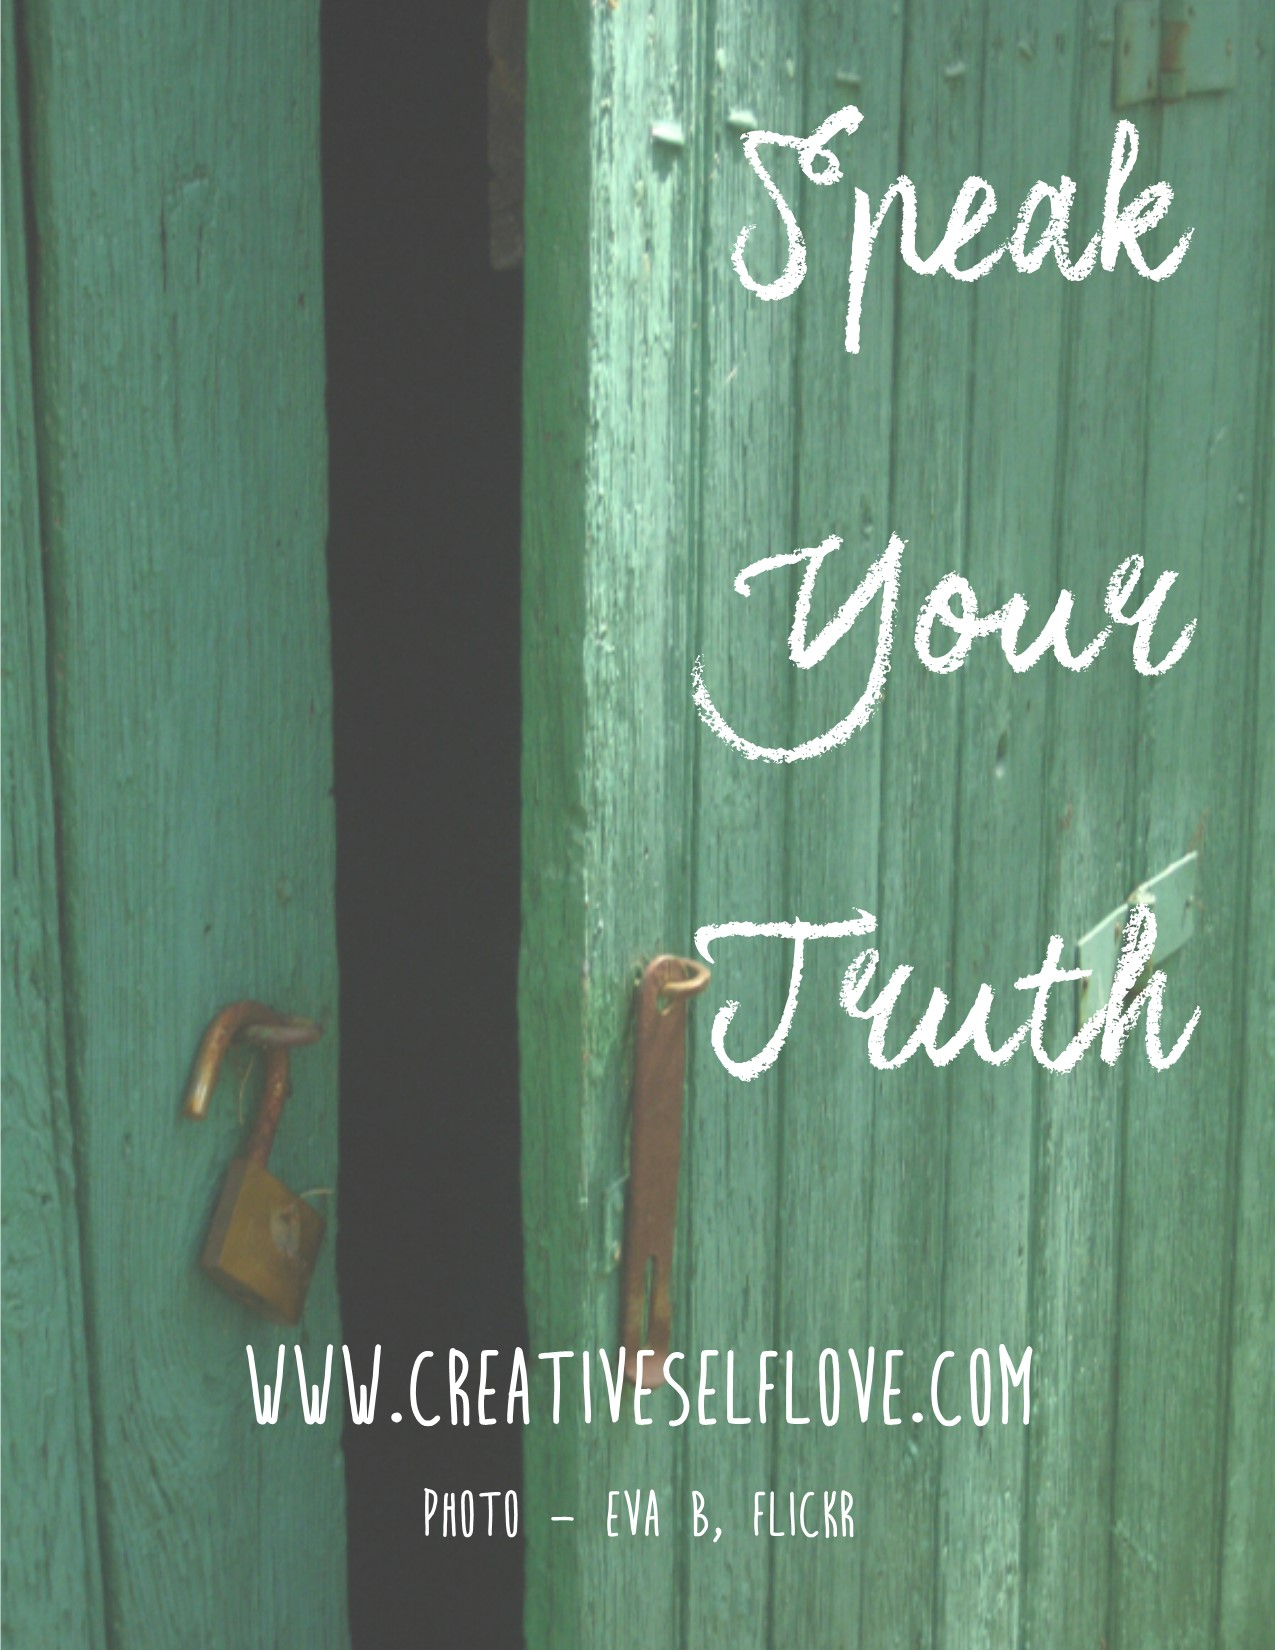 10.5 Speak Your Truth – Graphics by author; Photo: Eva B, Flickr